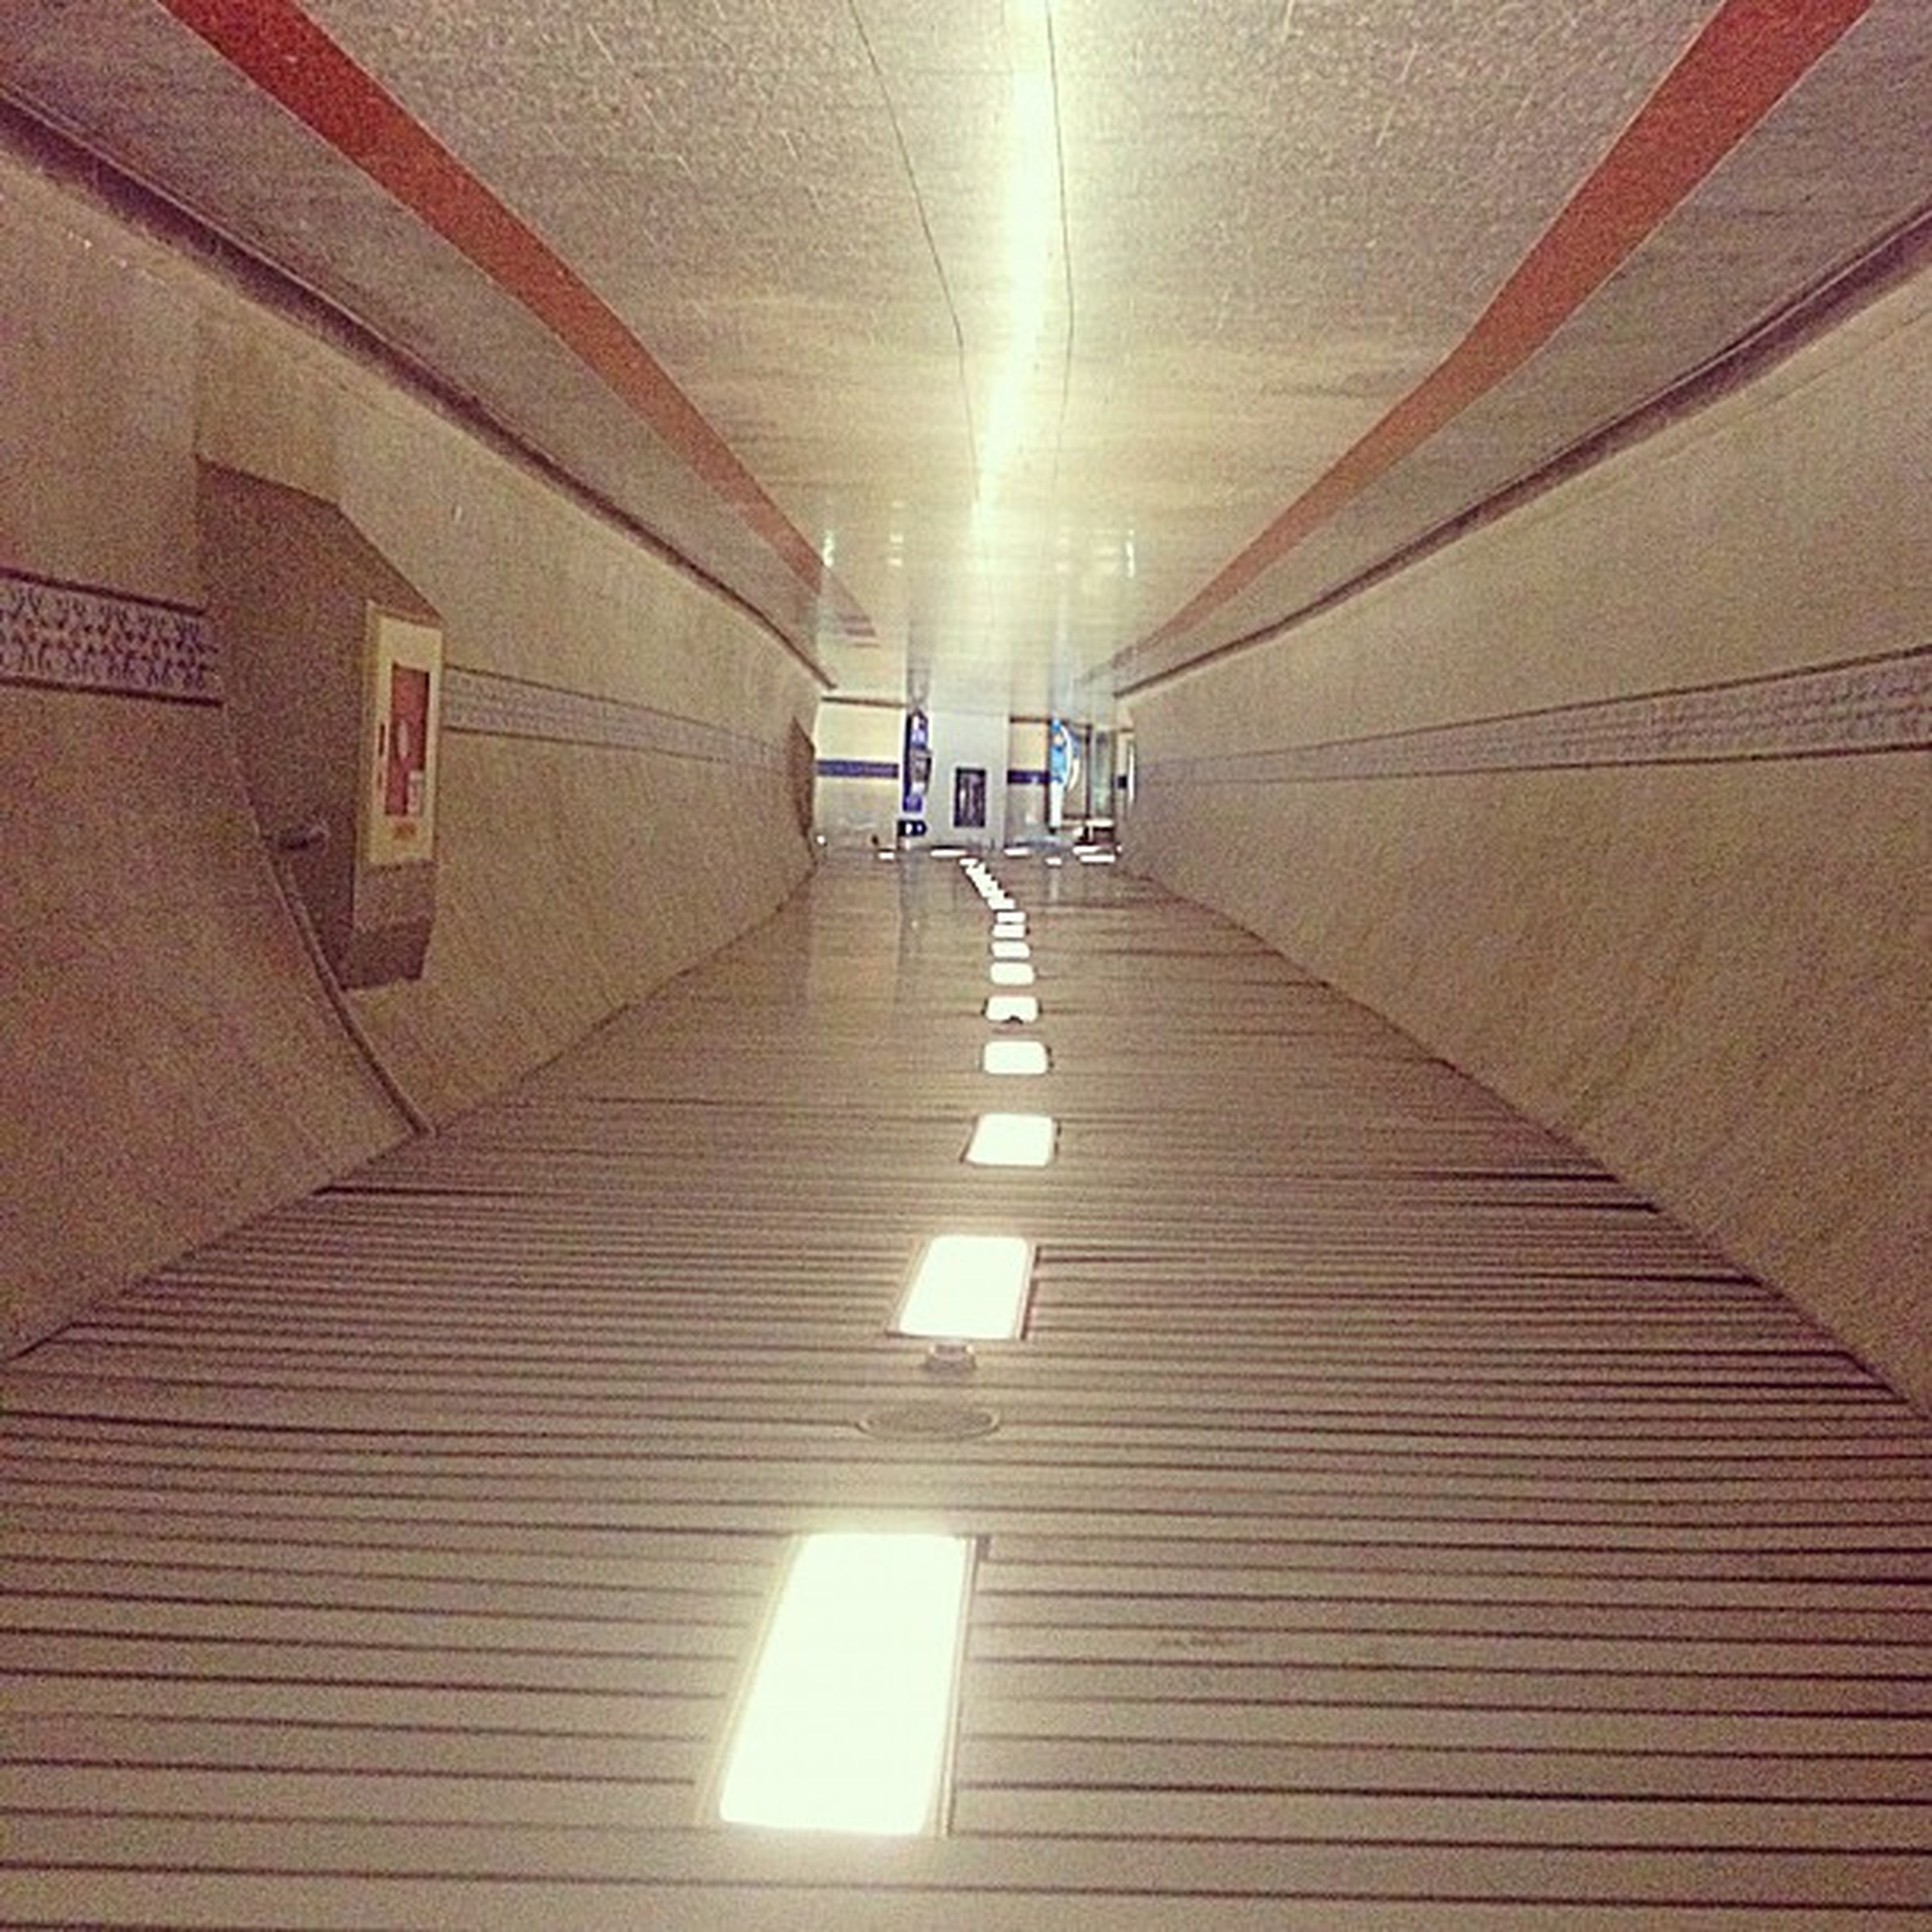 the way forward, indoors, architecture, built structure, ceiling, diminishing perspective, illuminated, empty, vanishing point, lighting equipment, corridor, wall - building feature, building, narrow, absence, flooring, tiled floor, wall, sunlight, tunnel